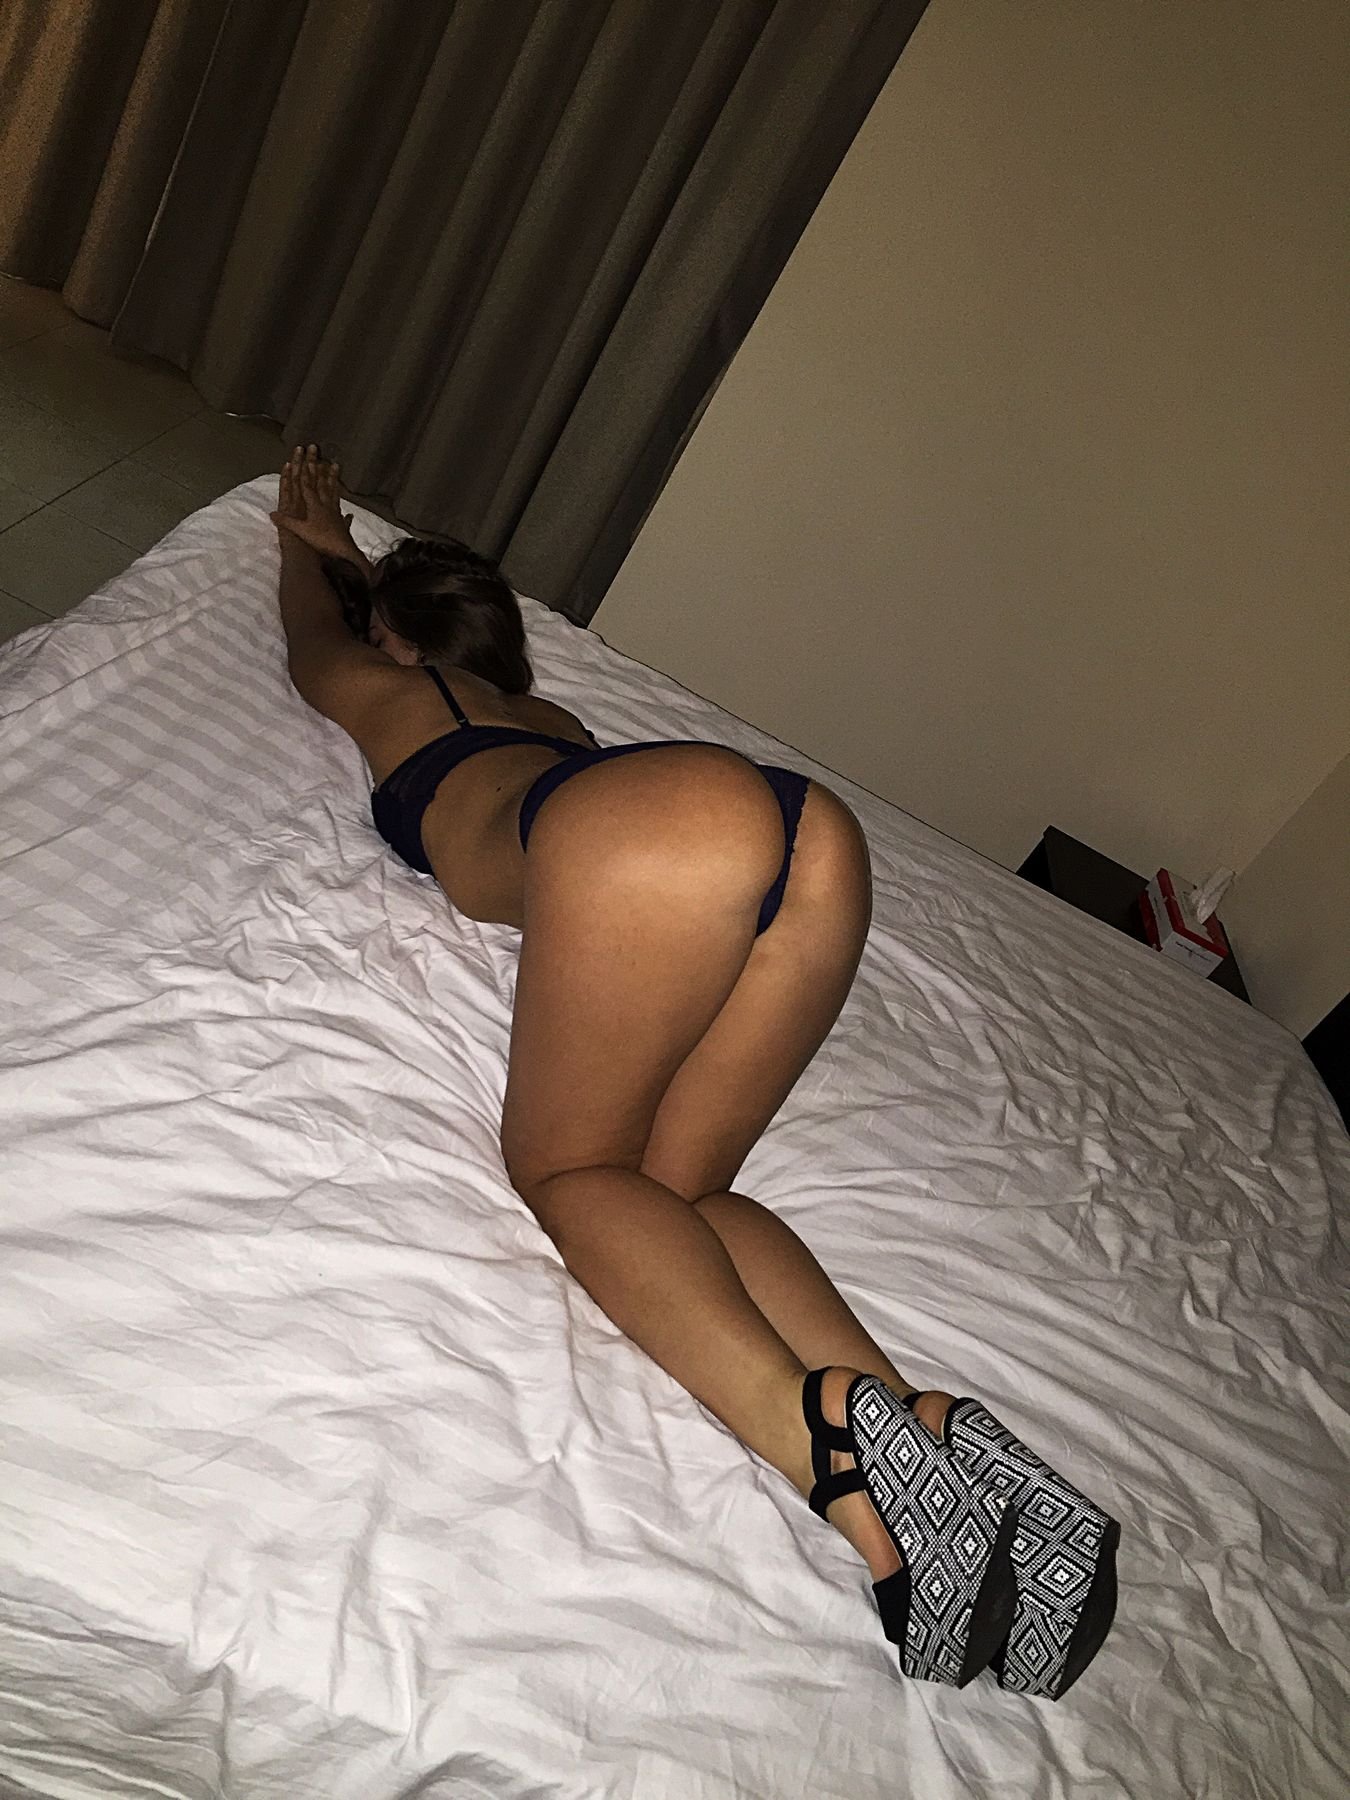 Escort hadsund massage escort girl